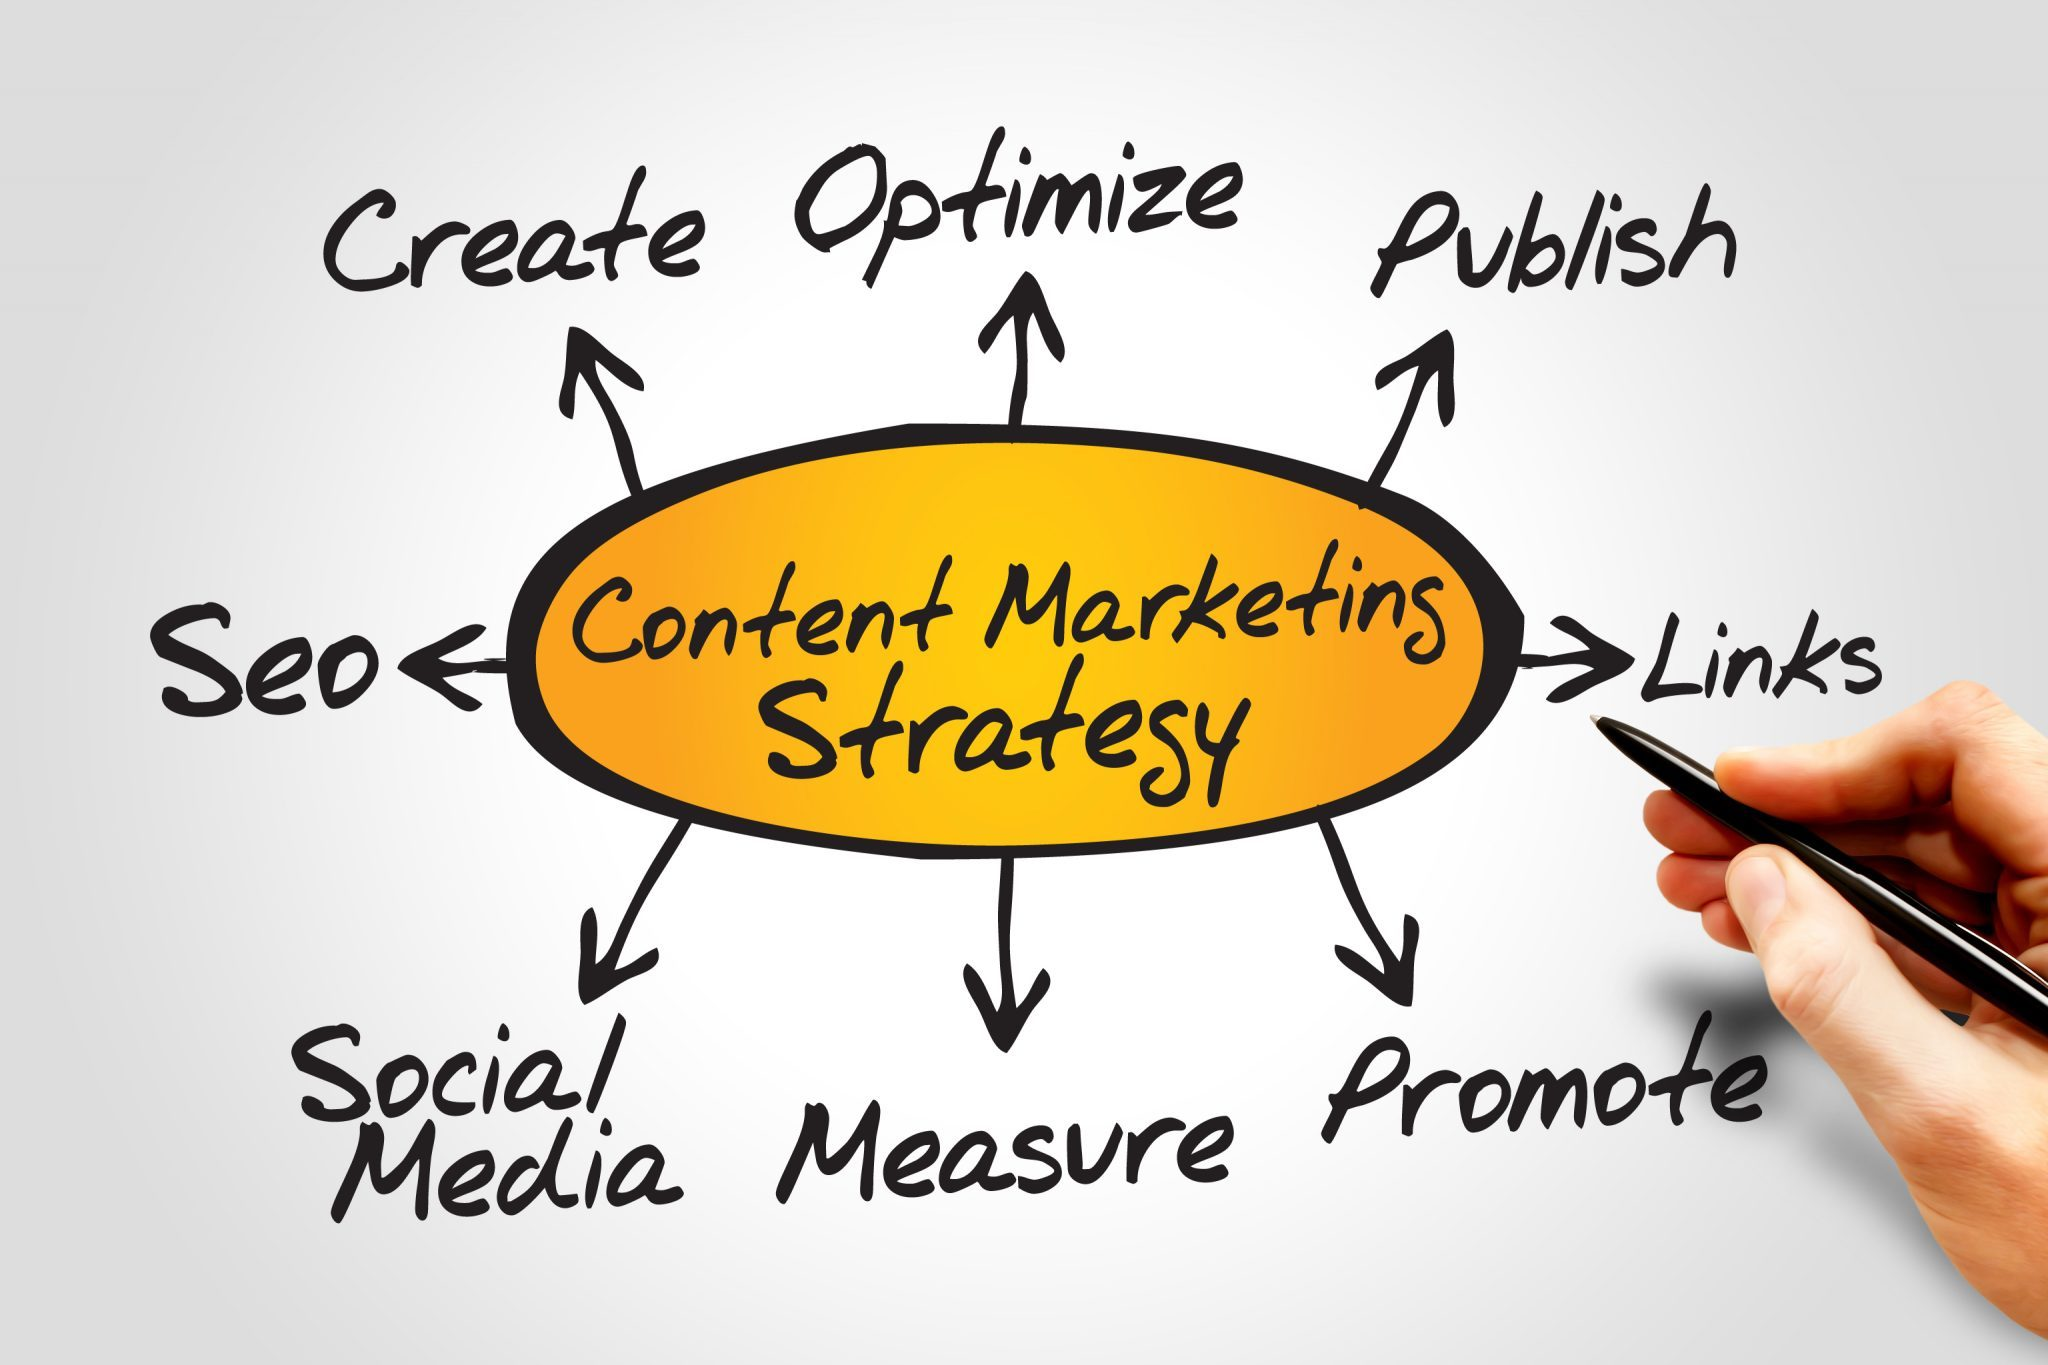 Content marketing and SEO work in harmony for your business